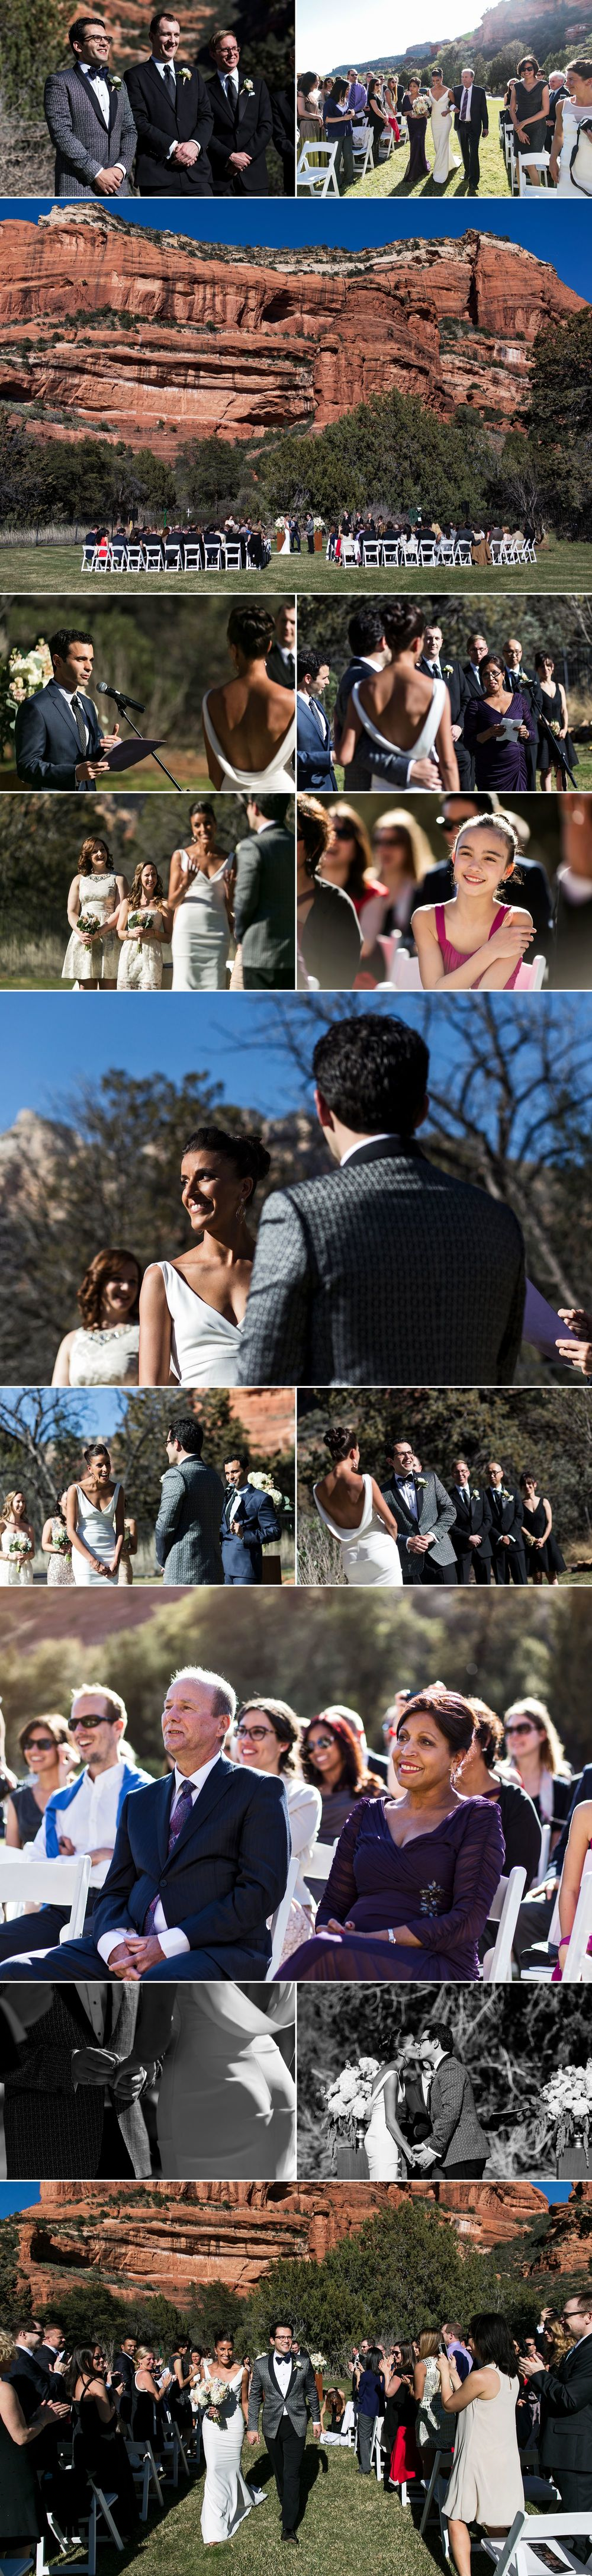 Wedding ceremony at the Enchantment Resort in Sedona Arizona